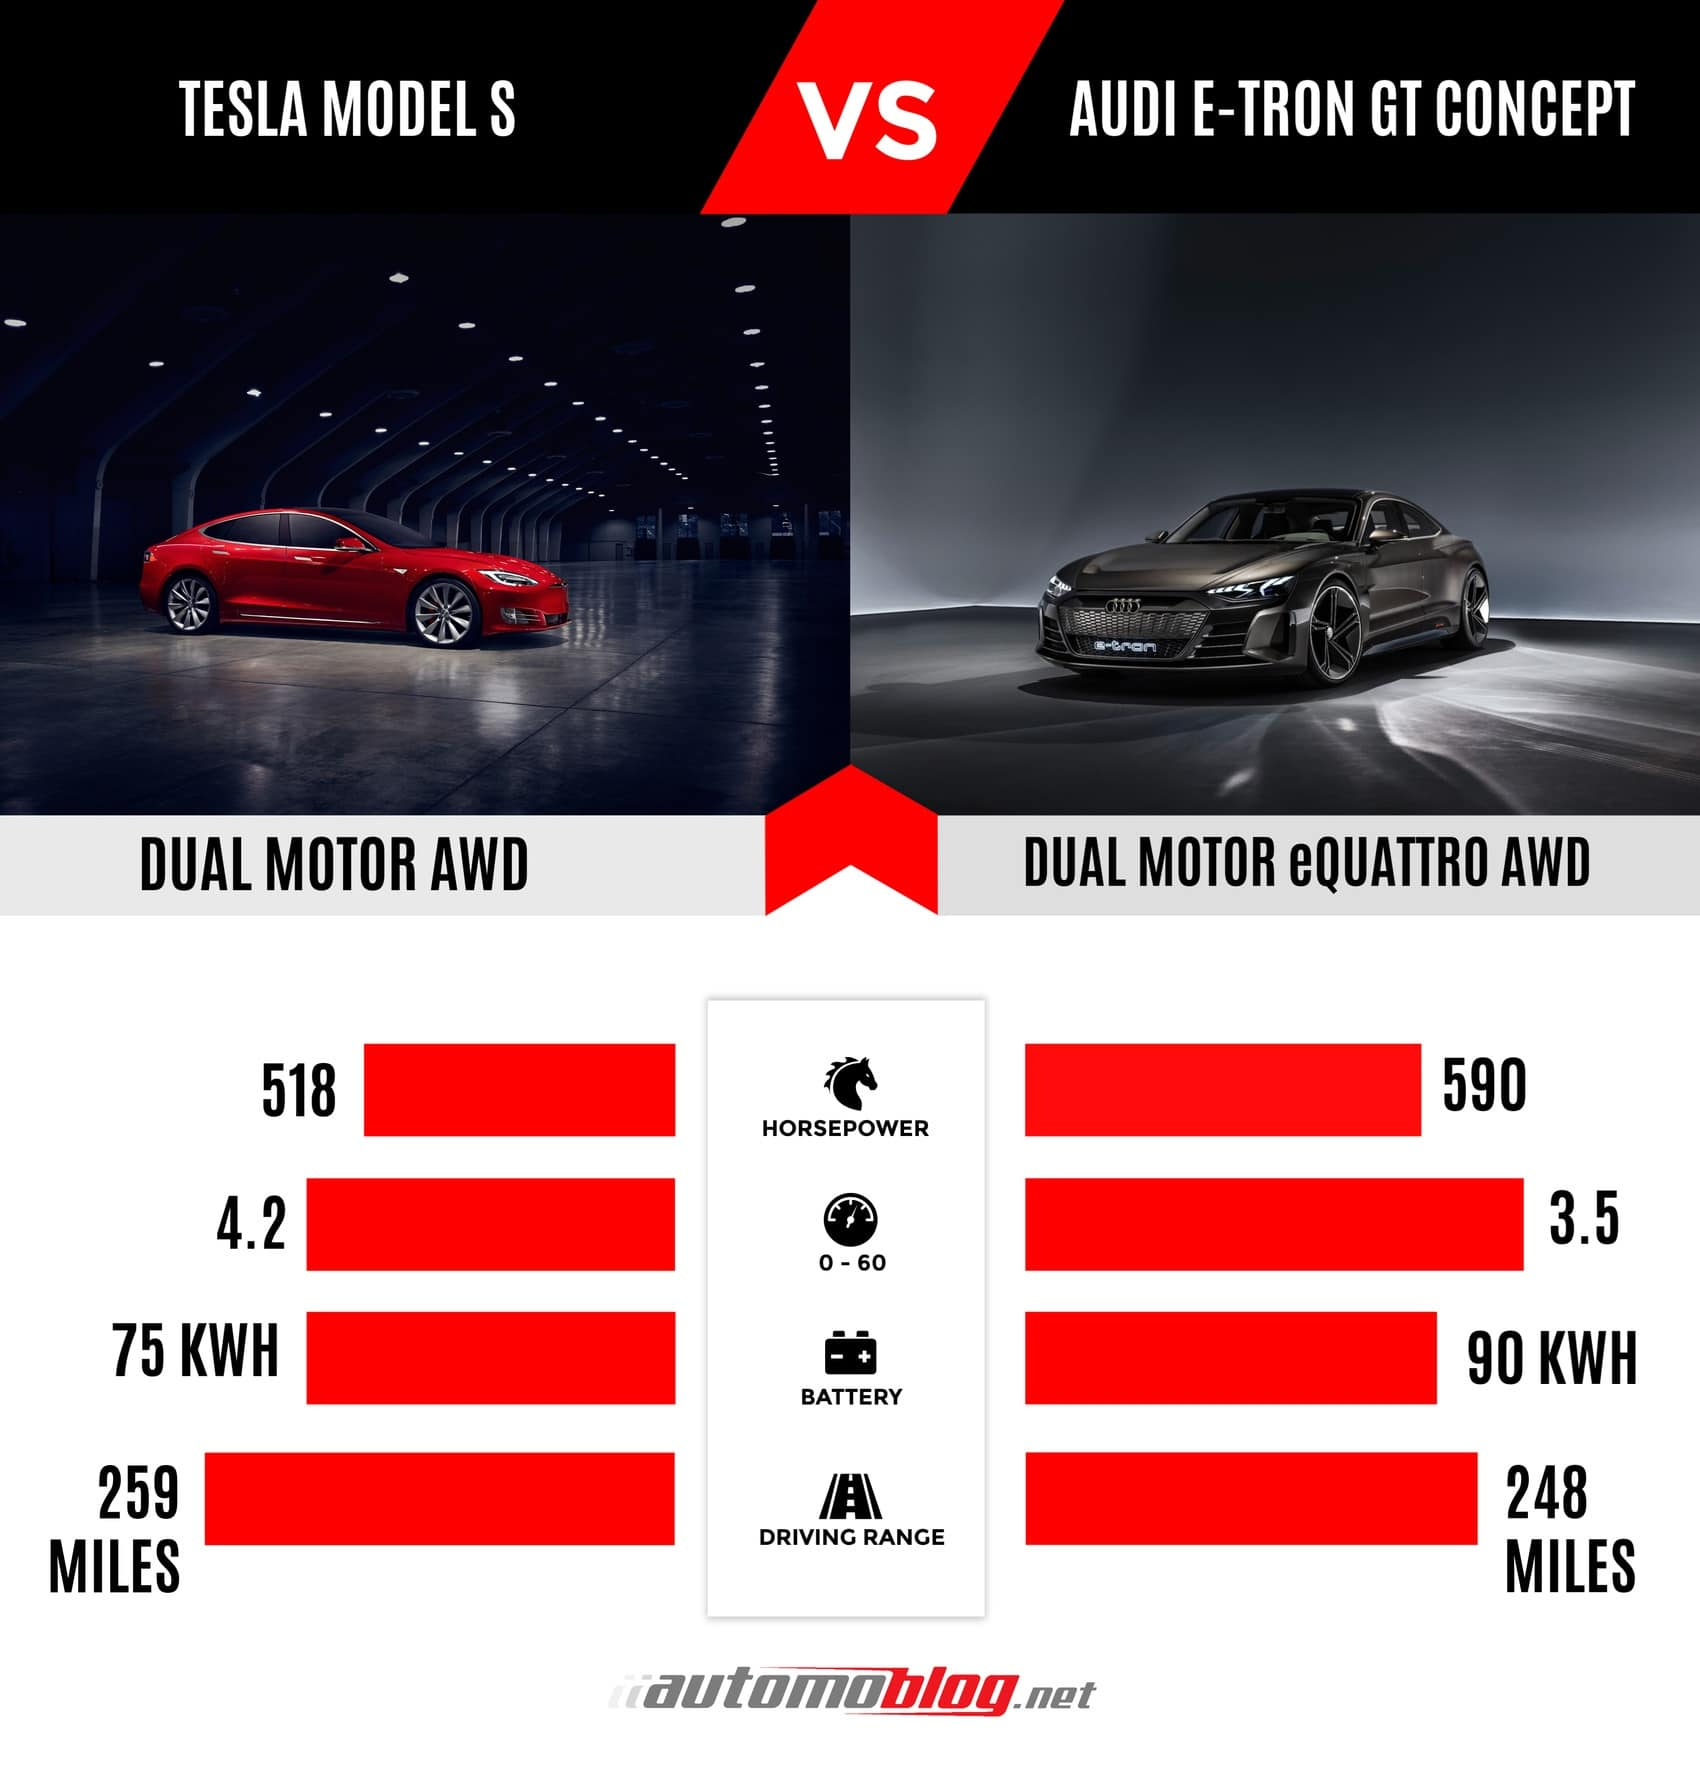 2018 Tesla Model S Camshaft: Virtual Showdown: Tesla Model S Versus Audi E-tron GT Concept